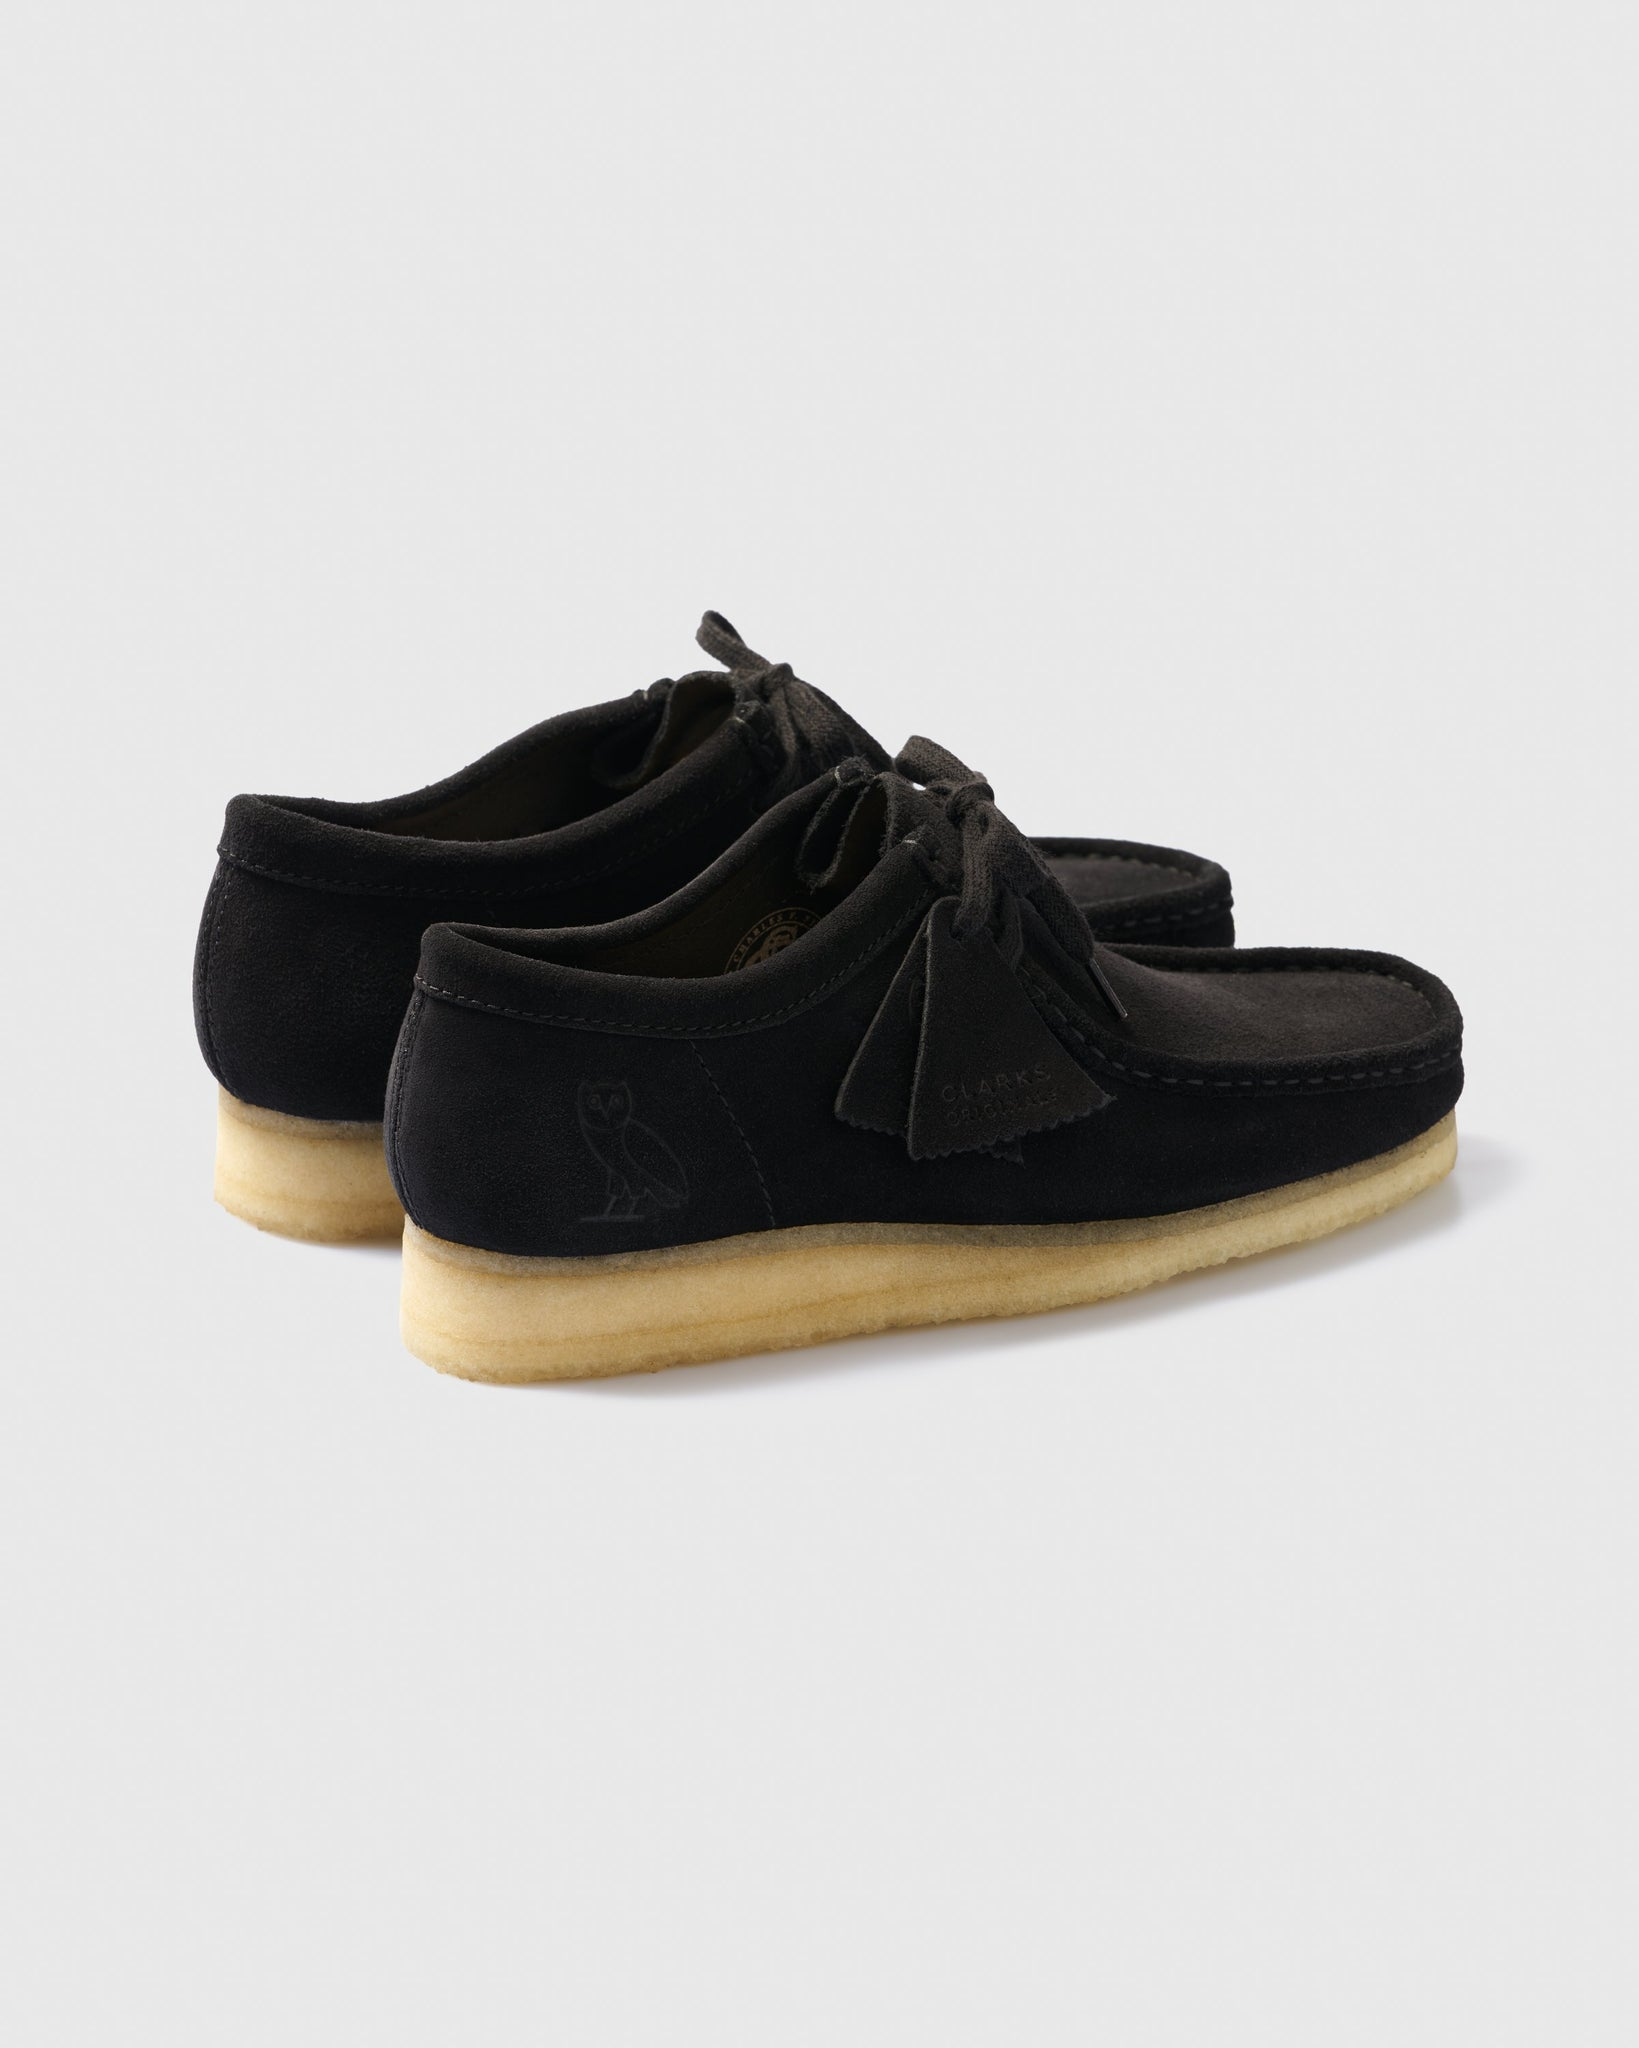 OVO x CLARKS ORIGINALS WALLABEE - BLACK IMAGE #2